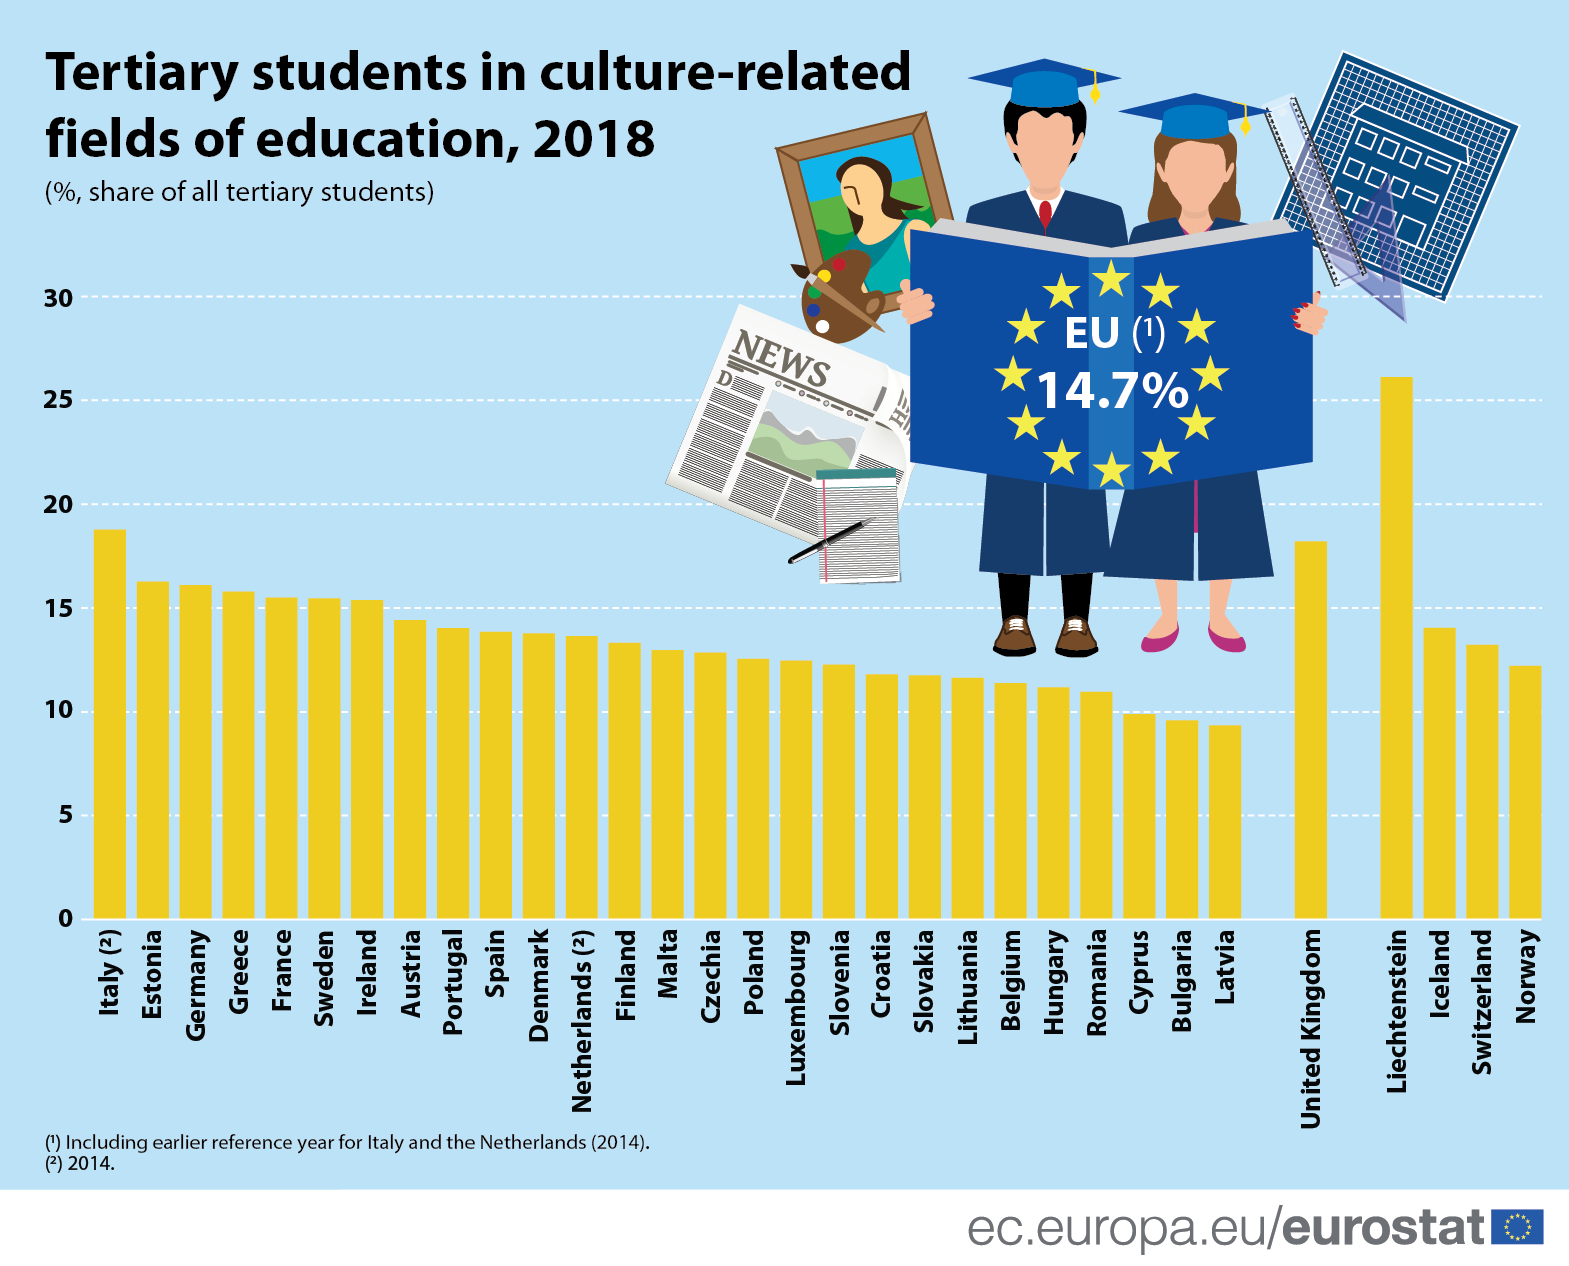 Infographic: Tertiary students in culture-related fields of education